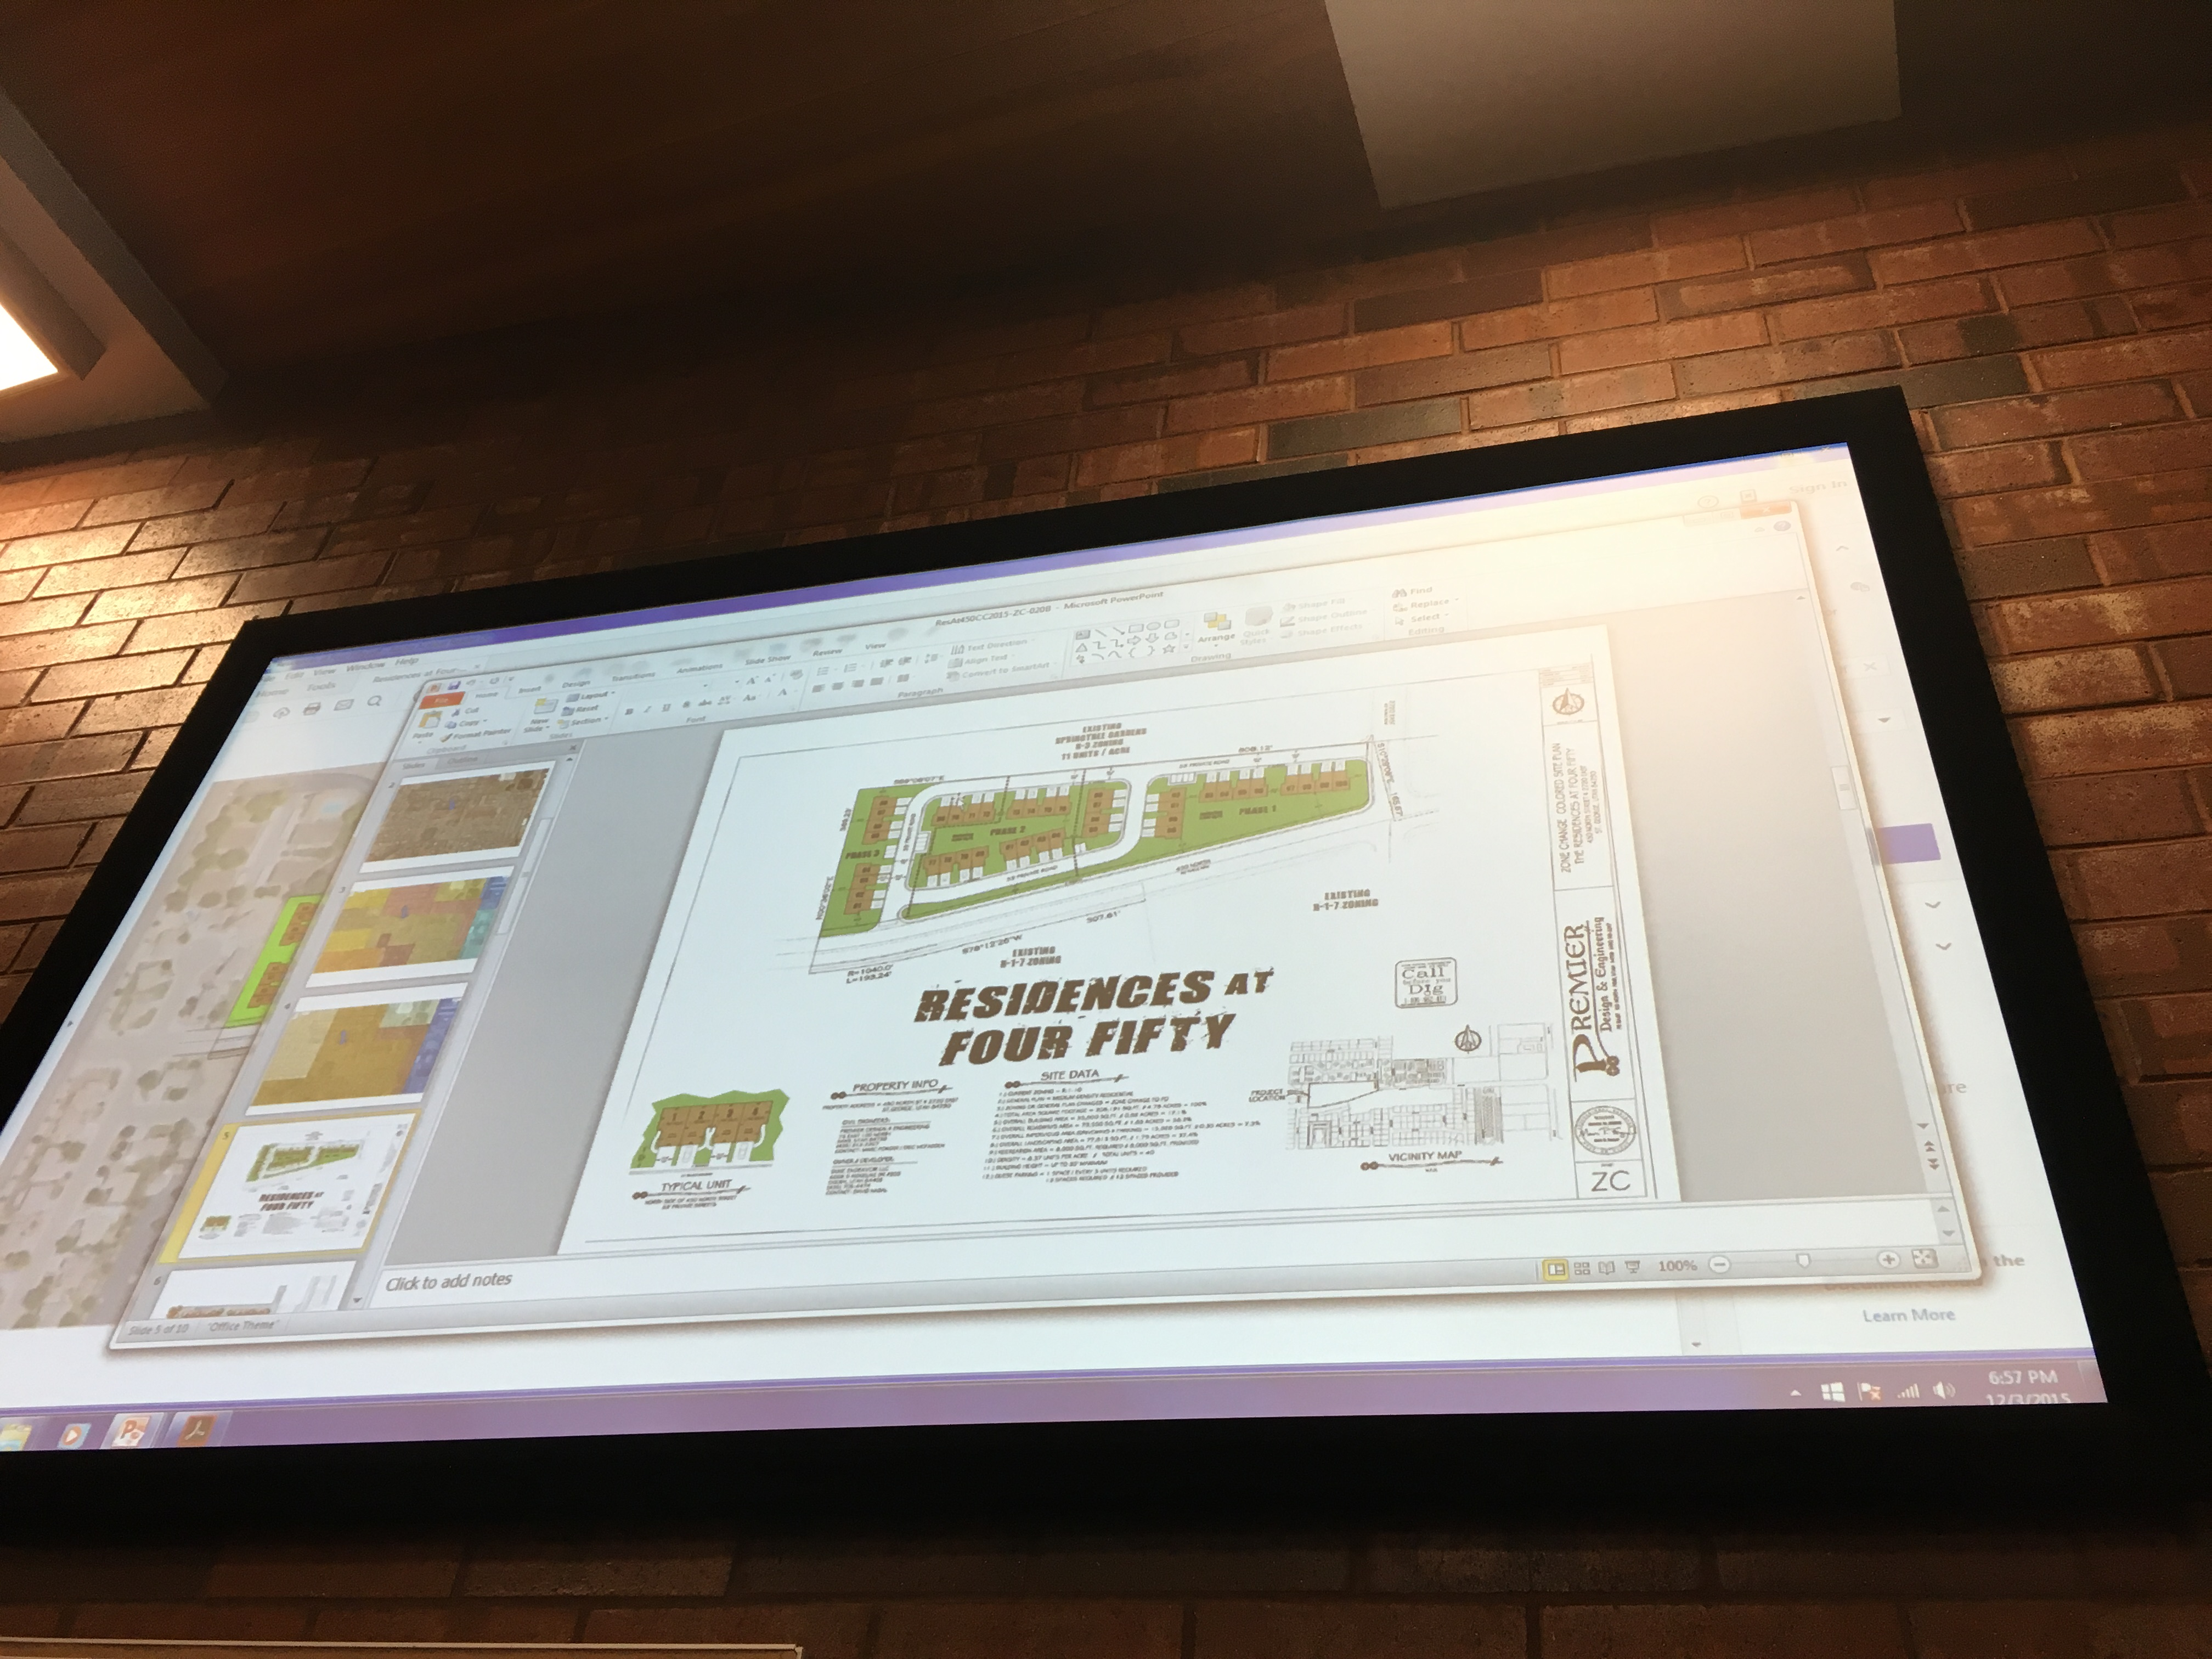 Map of town home development discussed at St. George City Council meeting, St. George, Utah, Dec. 3, 2015 | Photo by Tracie Sullivan, St. George News